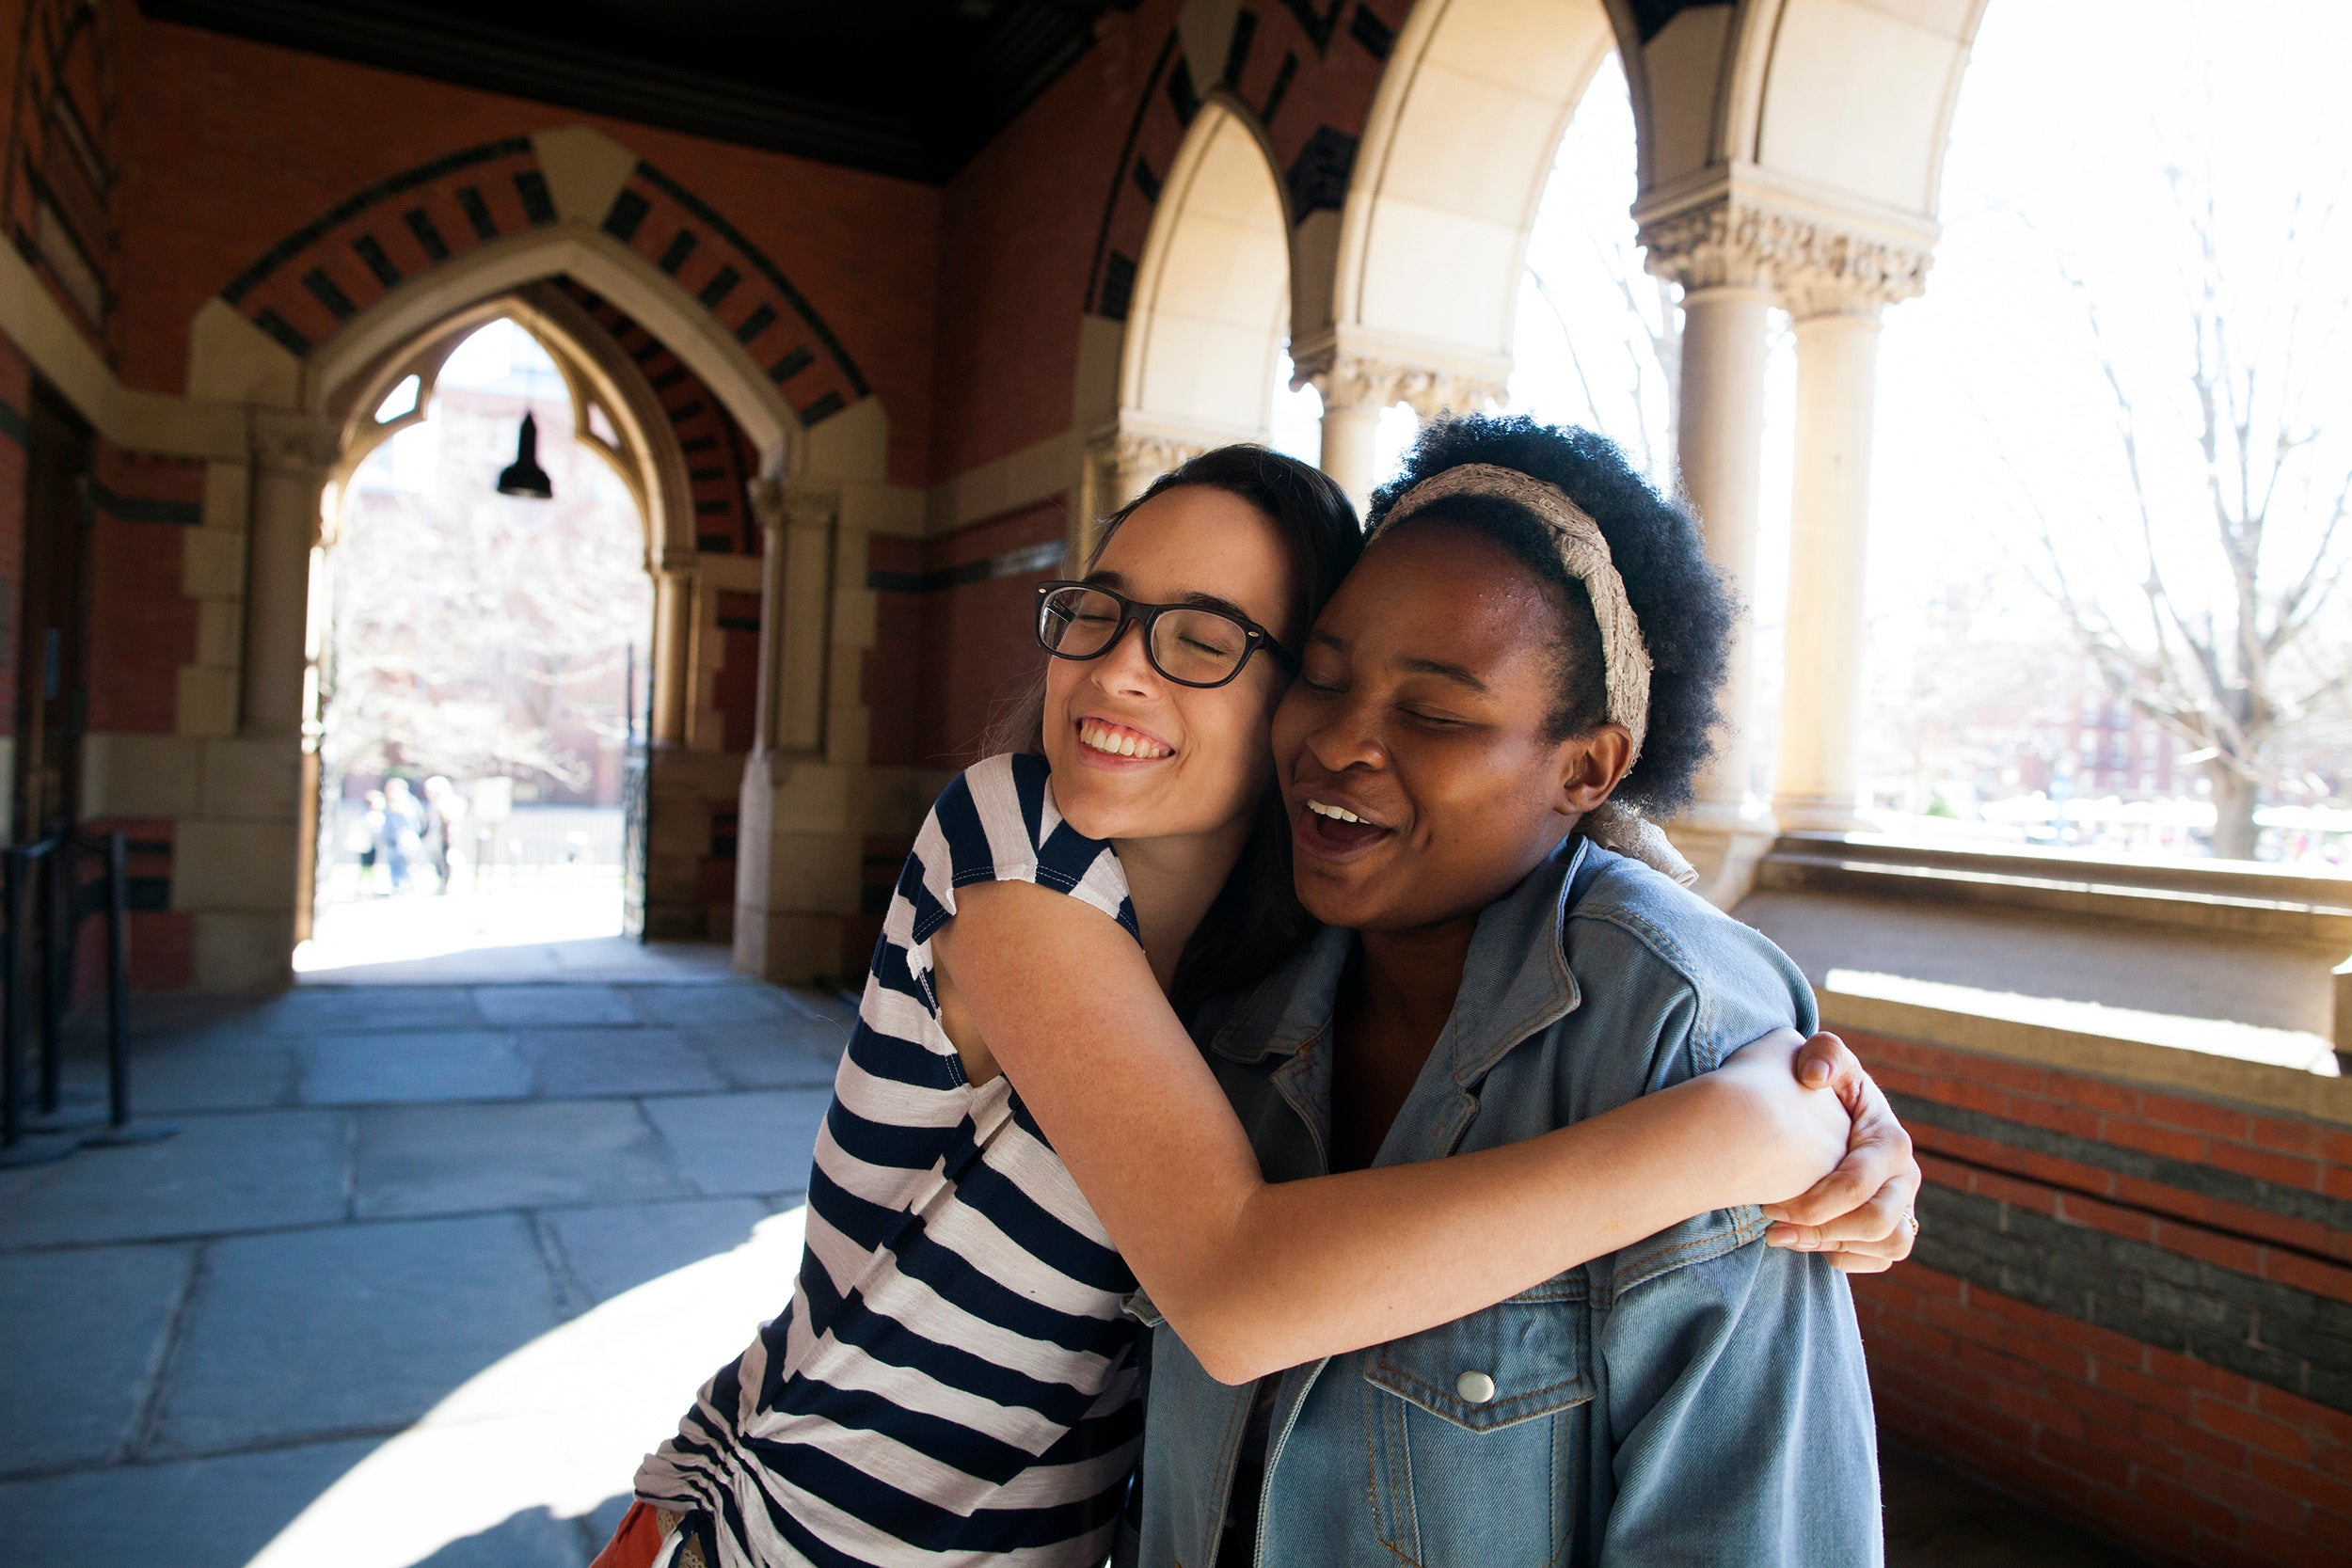 First year roommates Tatiana Patino '20 (left), from Georgia, and Walburga Khumalo '20, from South Africa, share a room in Stoughton Hall.